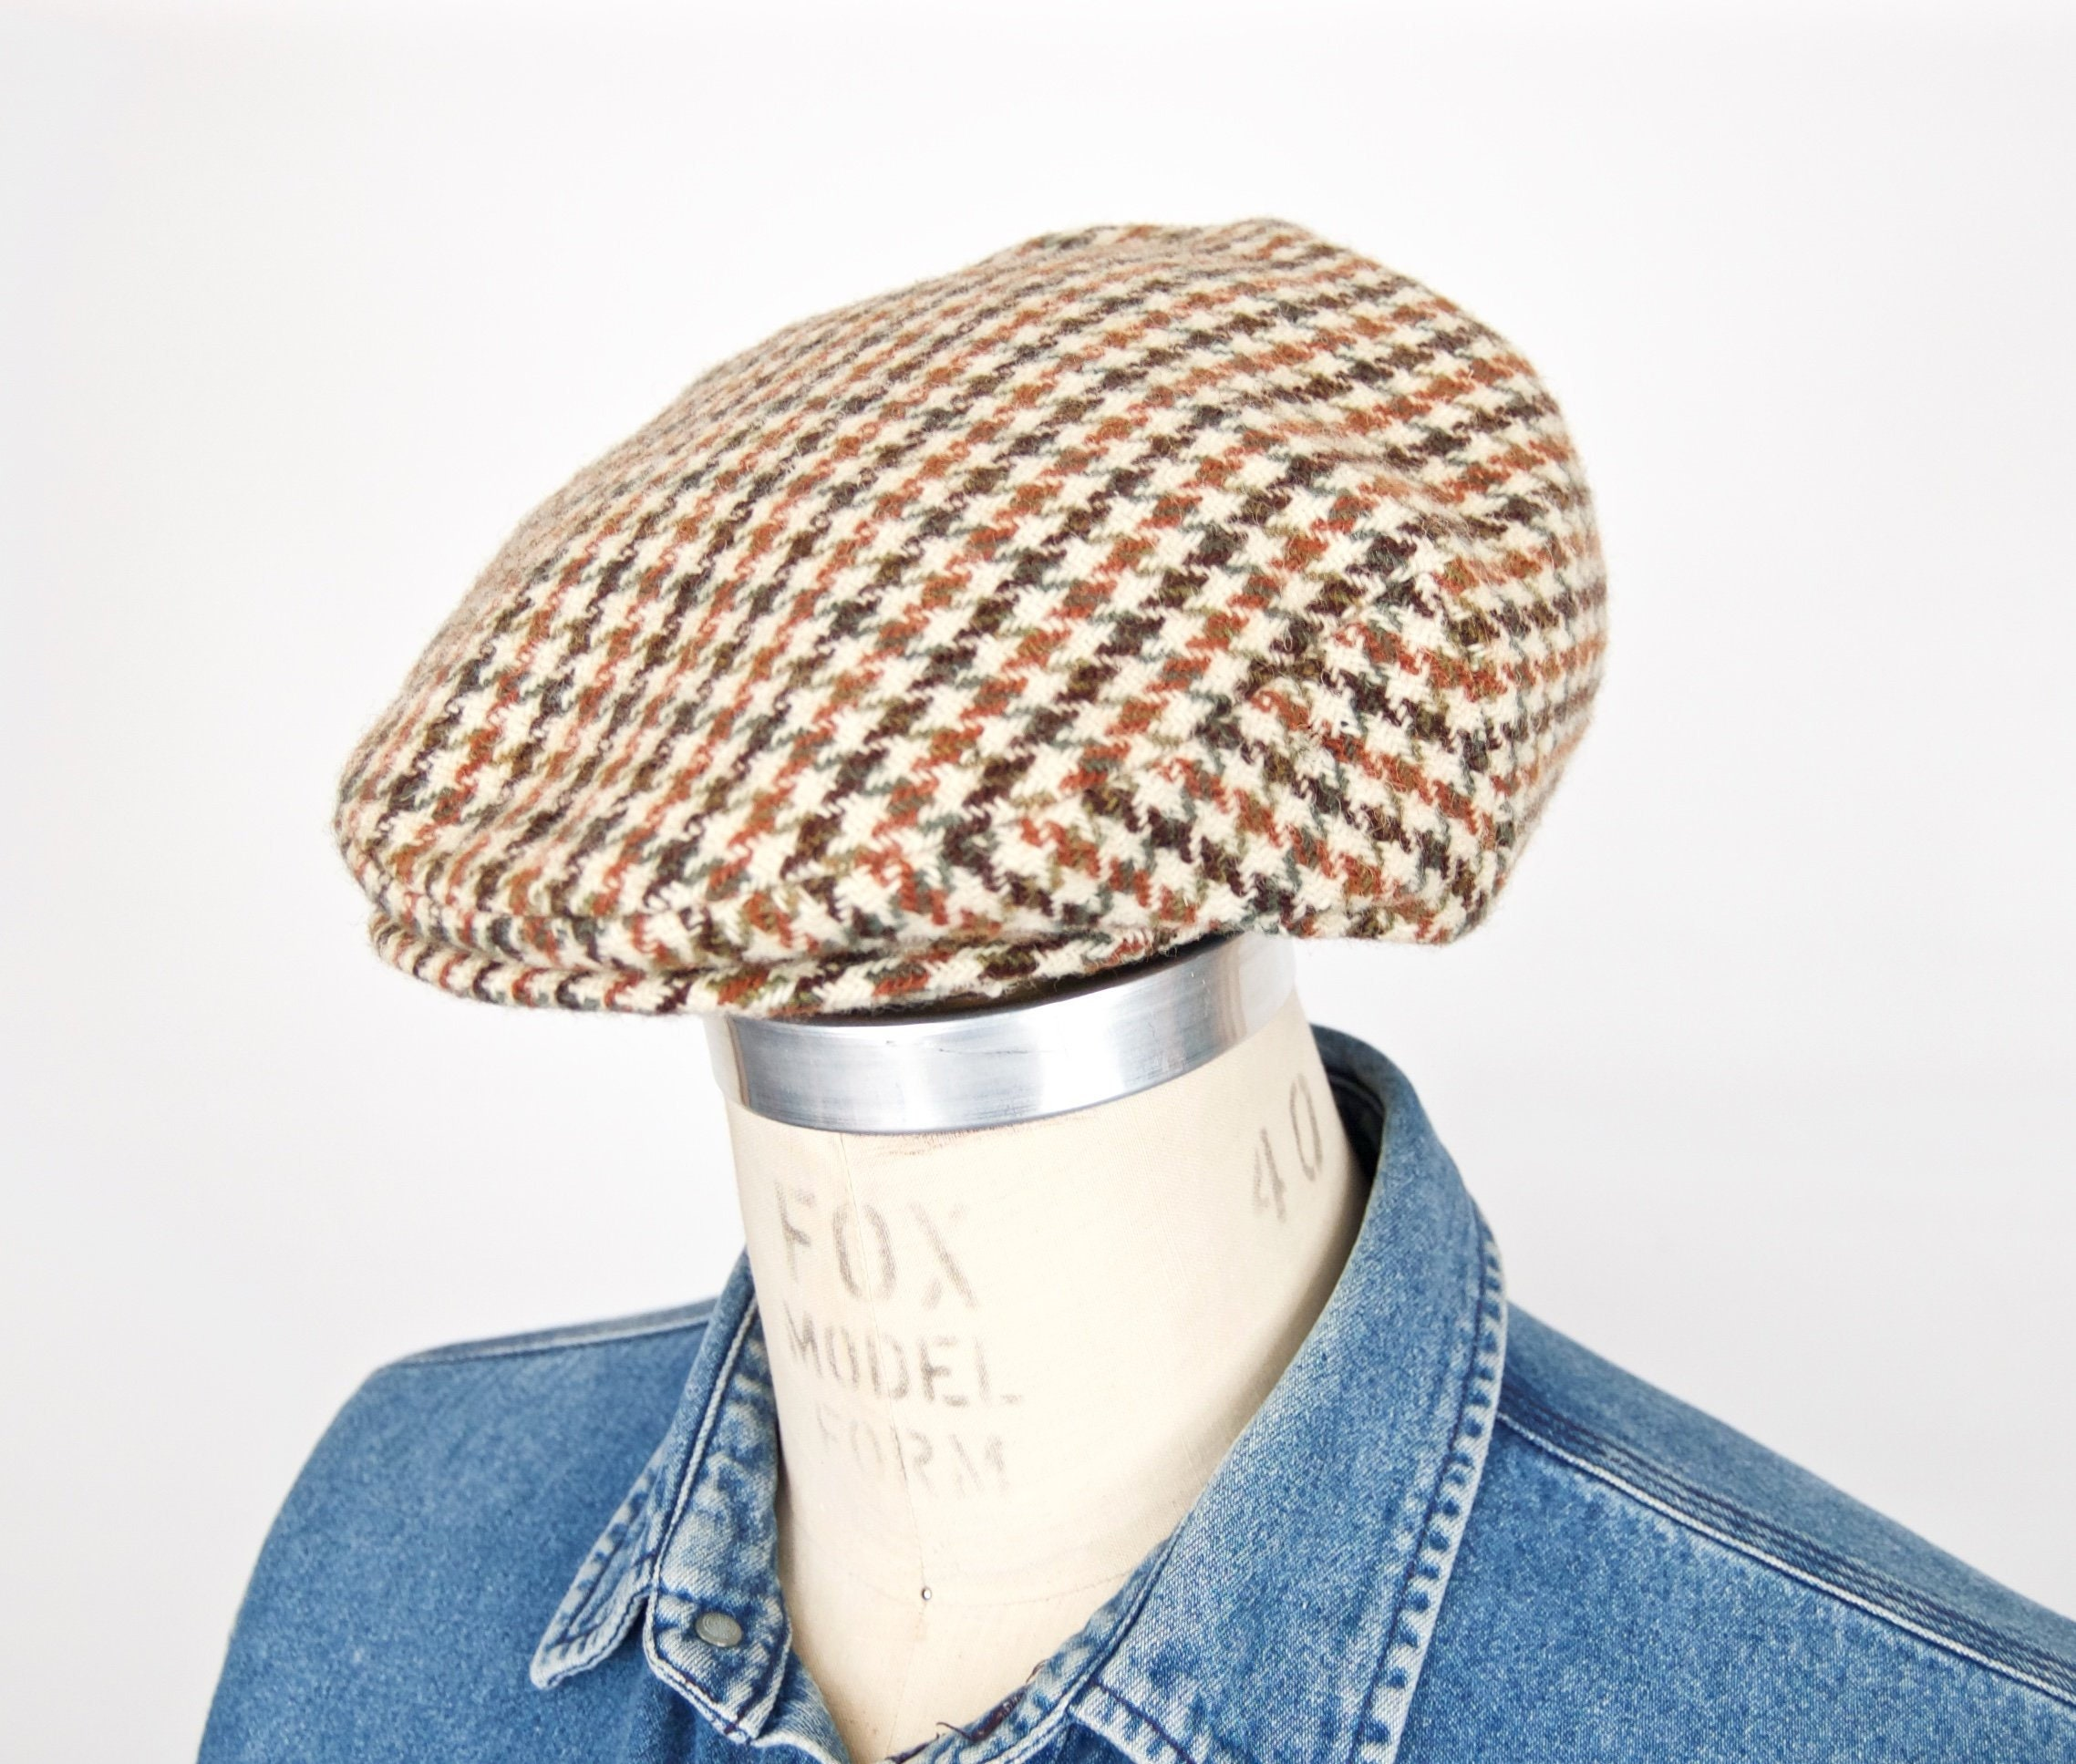 2f09a294e Harris Tweed Houndstooth Flat Cap / vintage English hounds tooth plaid wool  driving cap / Dunn&Co. men's tan khaki golfing hat / size medium